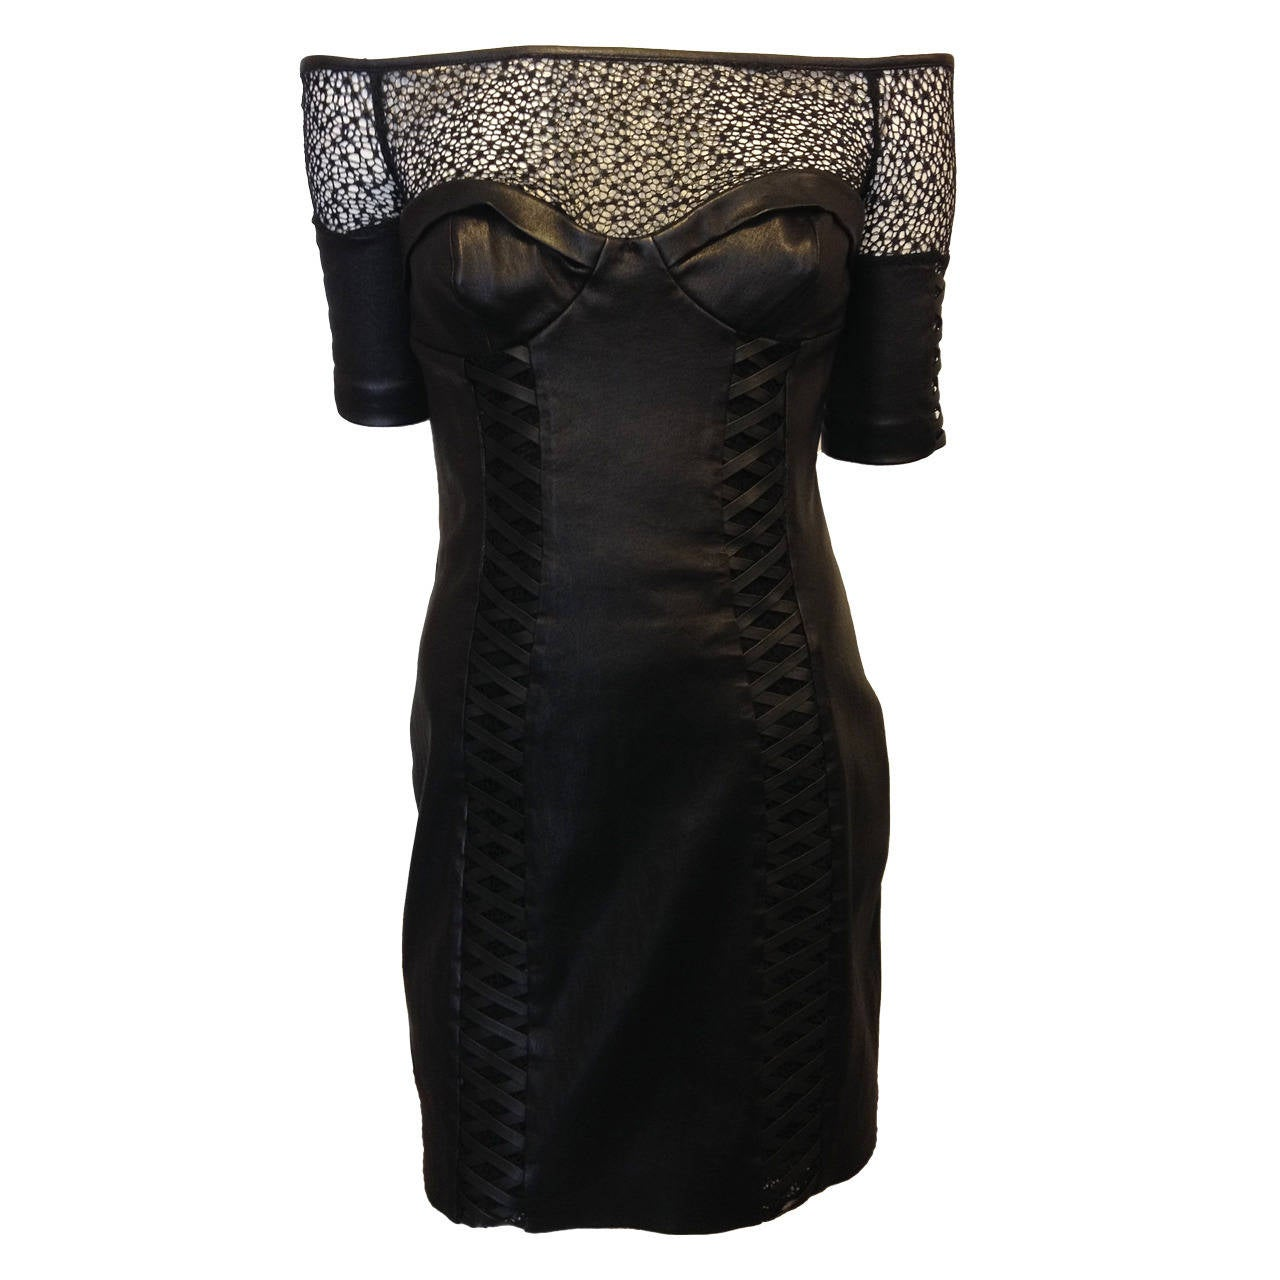 Kevork Kiledjian Black Leather and Lace Dress 1